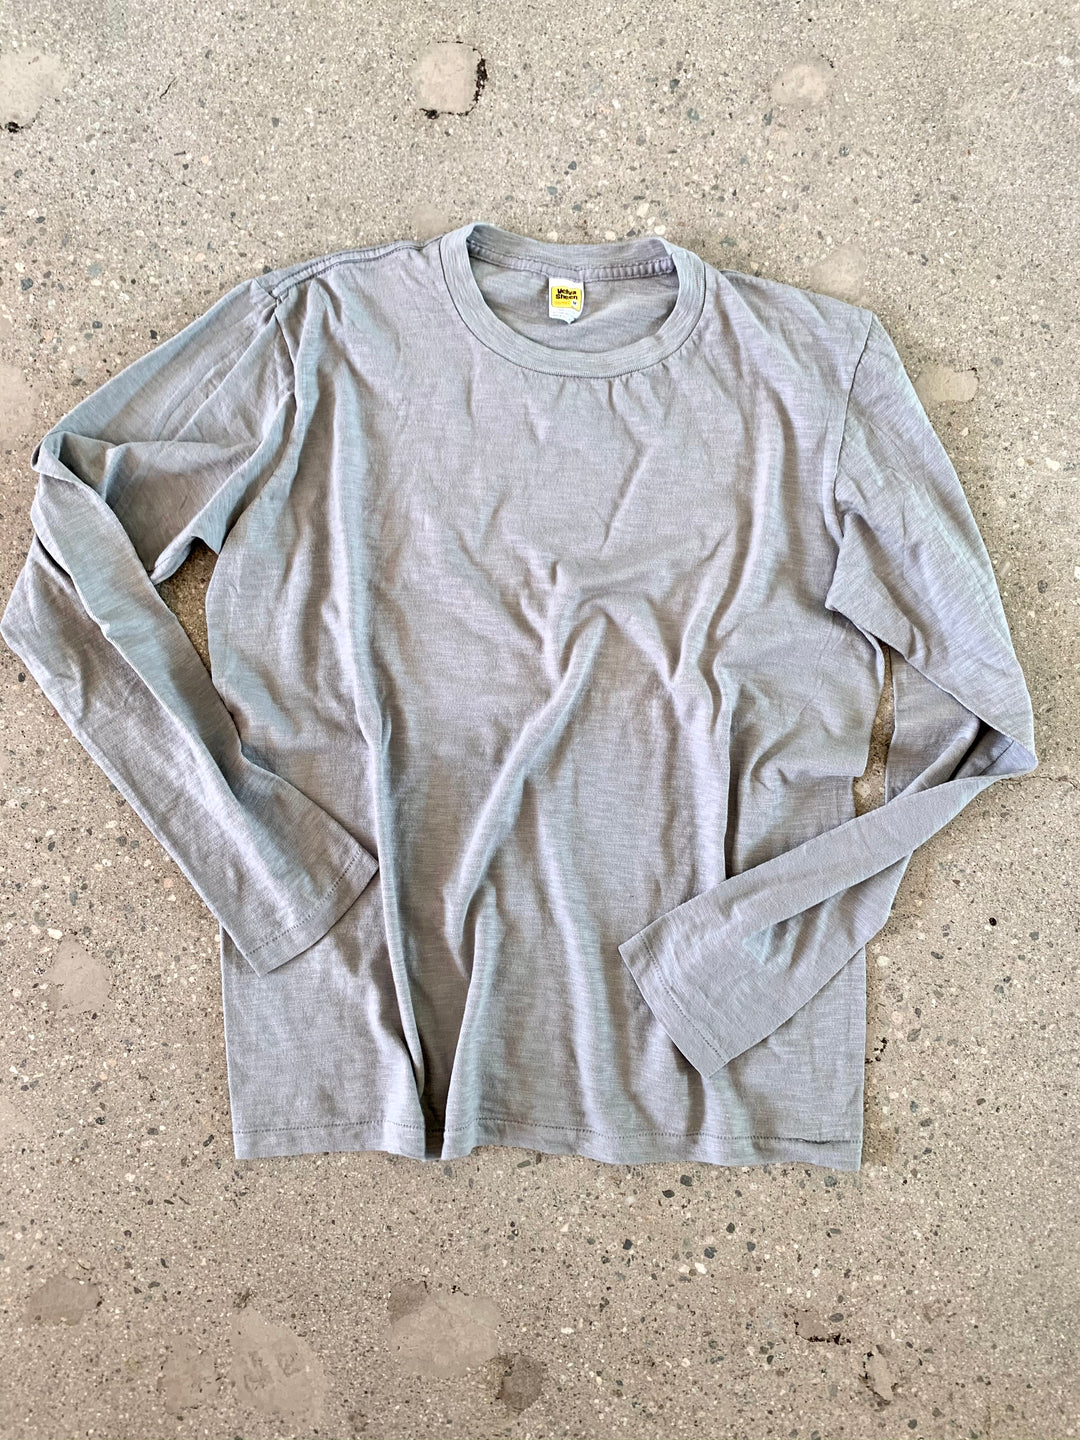 Velva Sheen Grey Regular Long Sleeve Tee